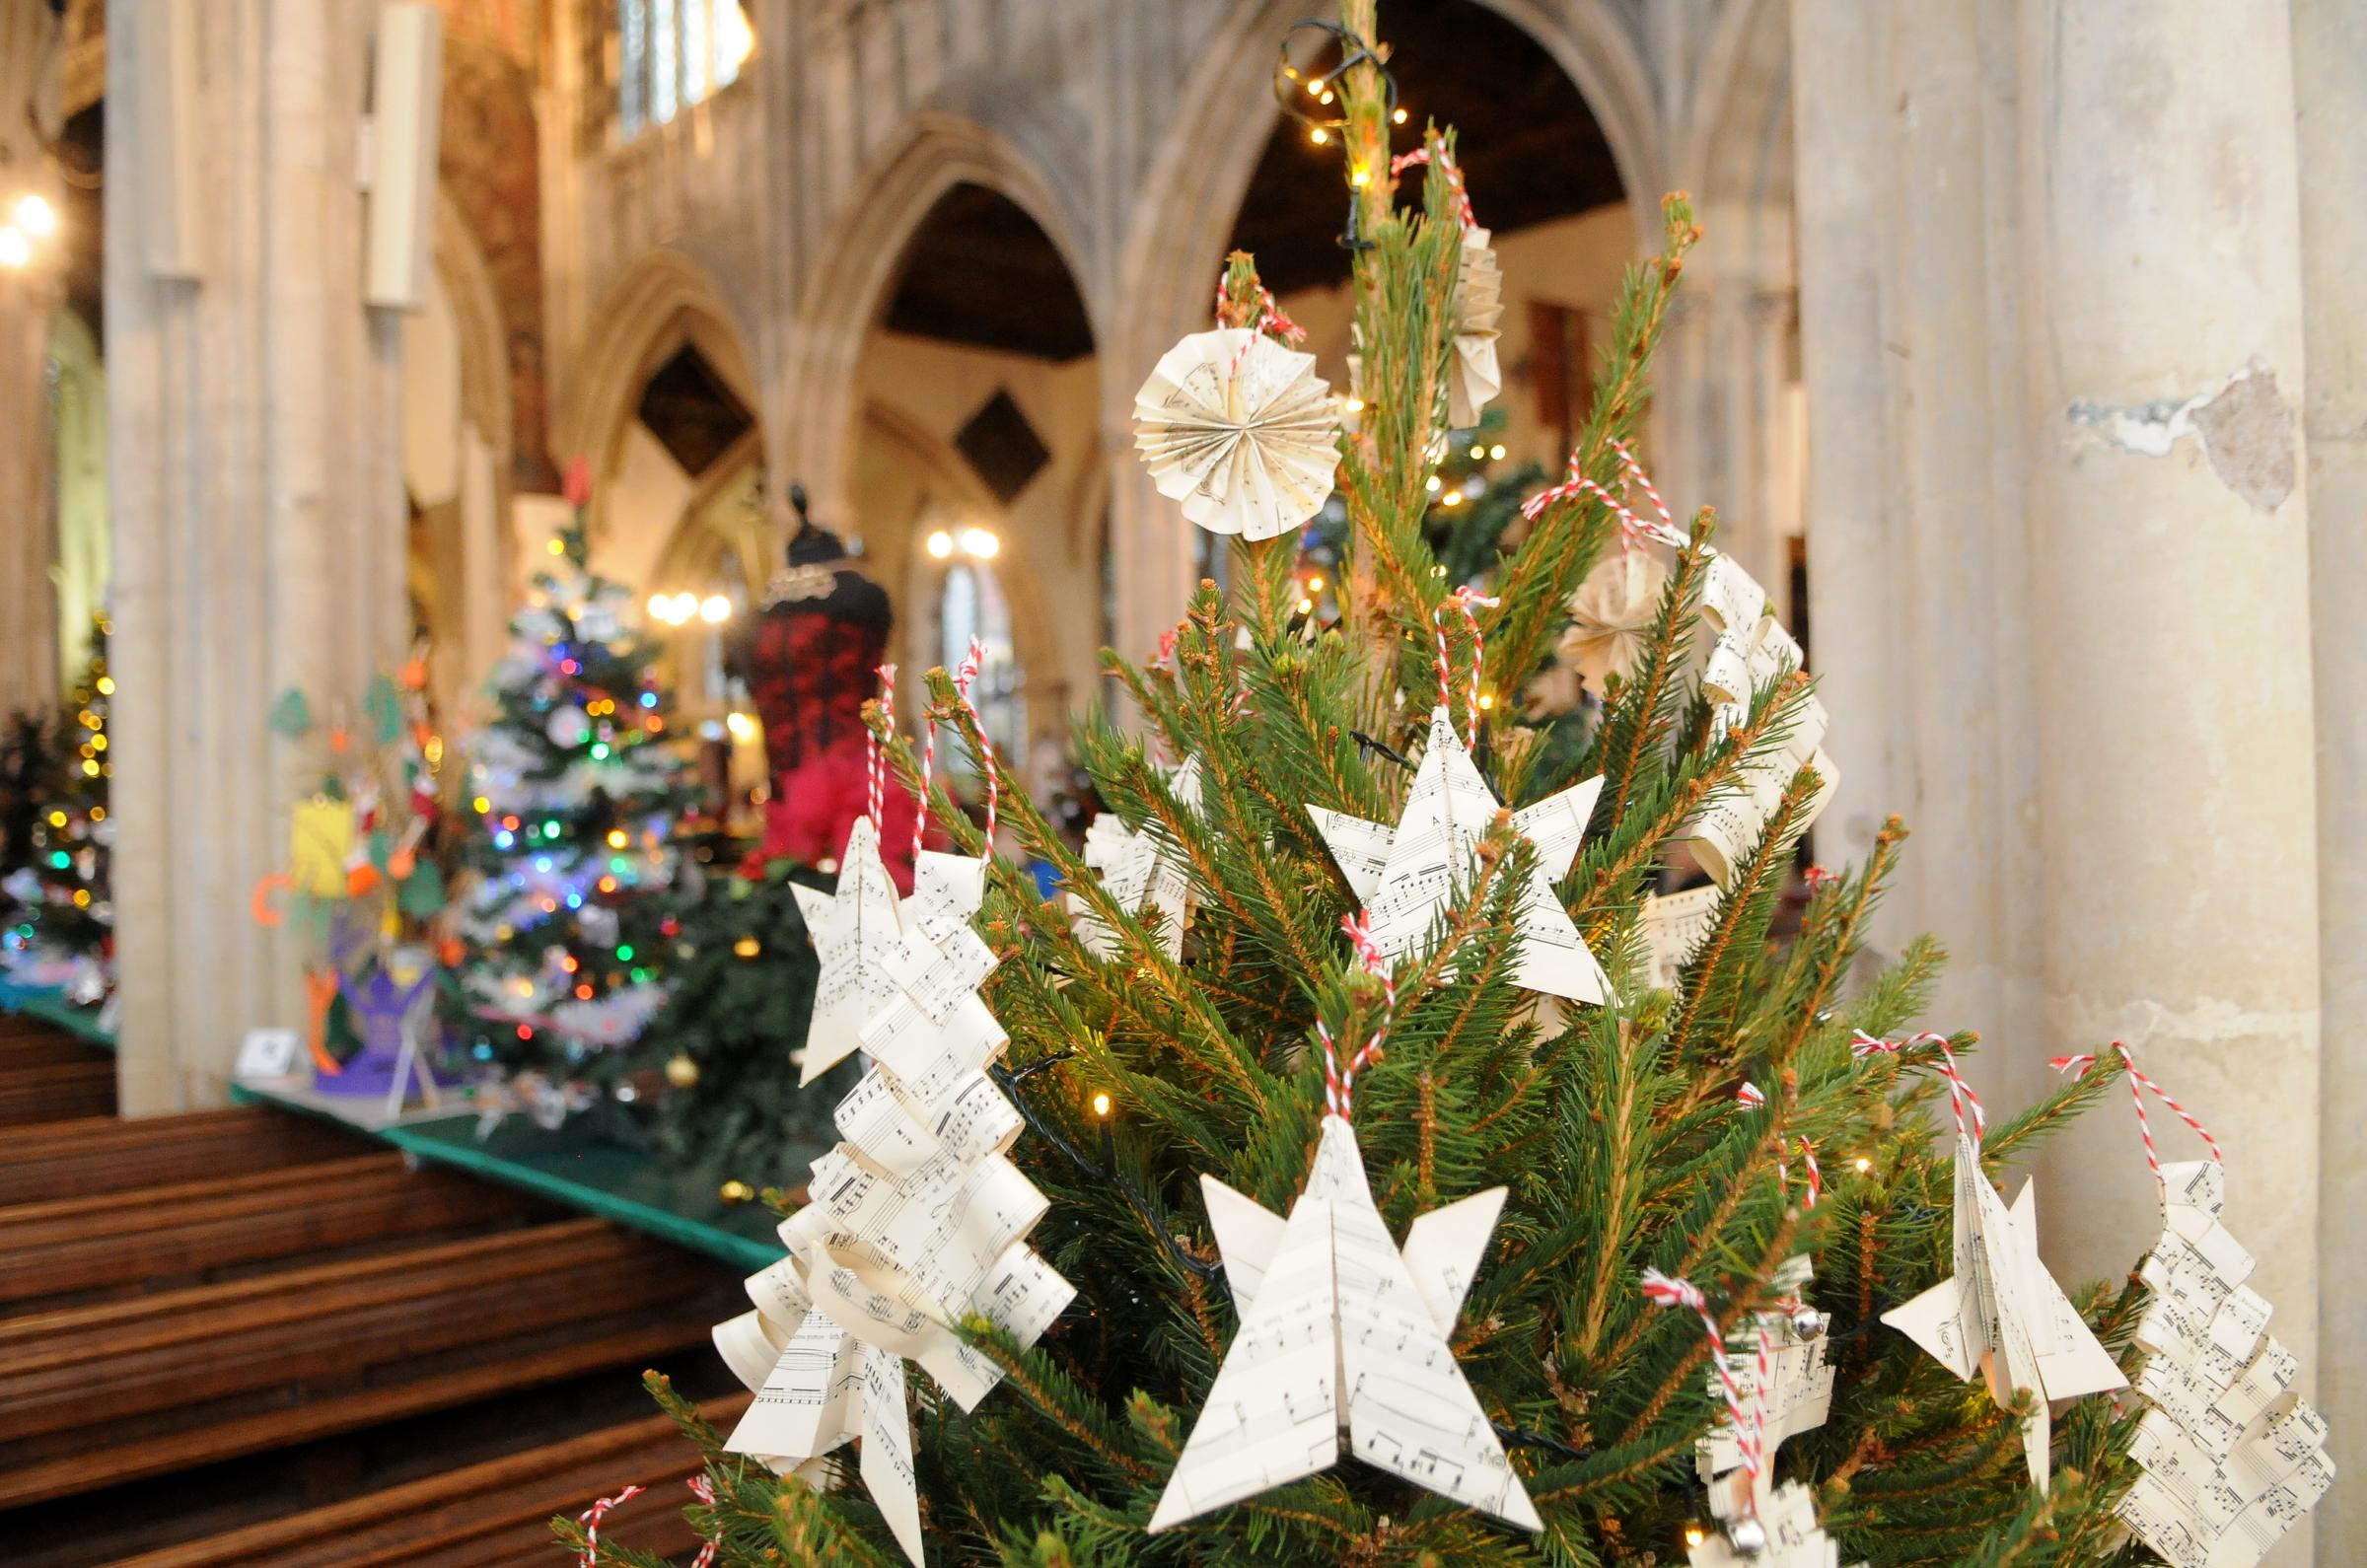 A Musical Christmas by Coombe Bissett Primary School..St Thomas's Church Christmas Tree Festival DC8915P30 Picture by Tom Gregory.